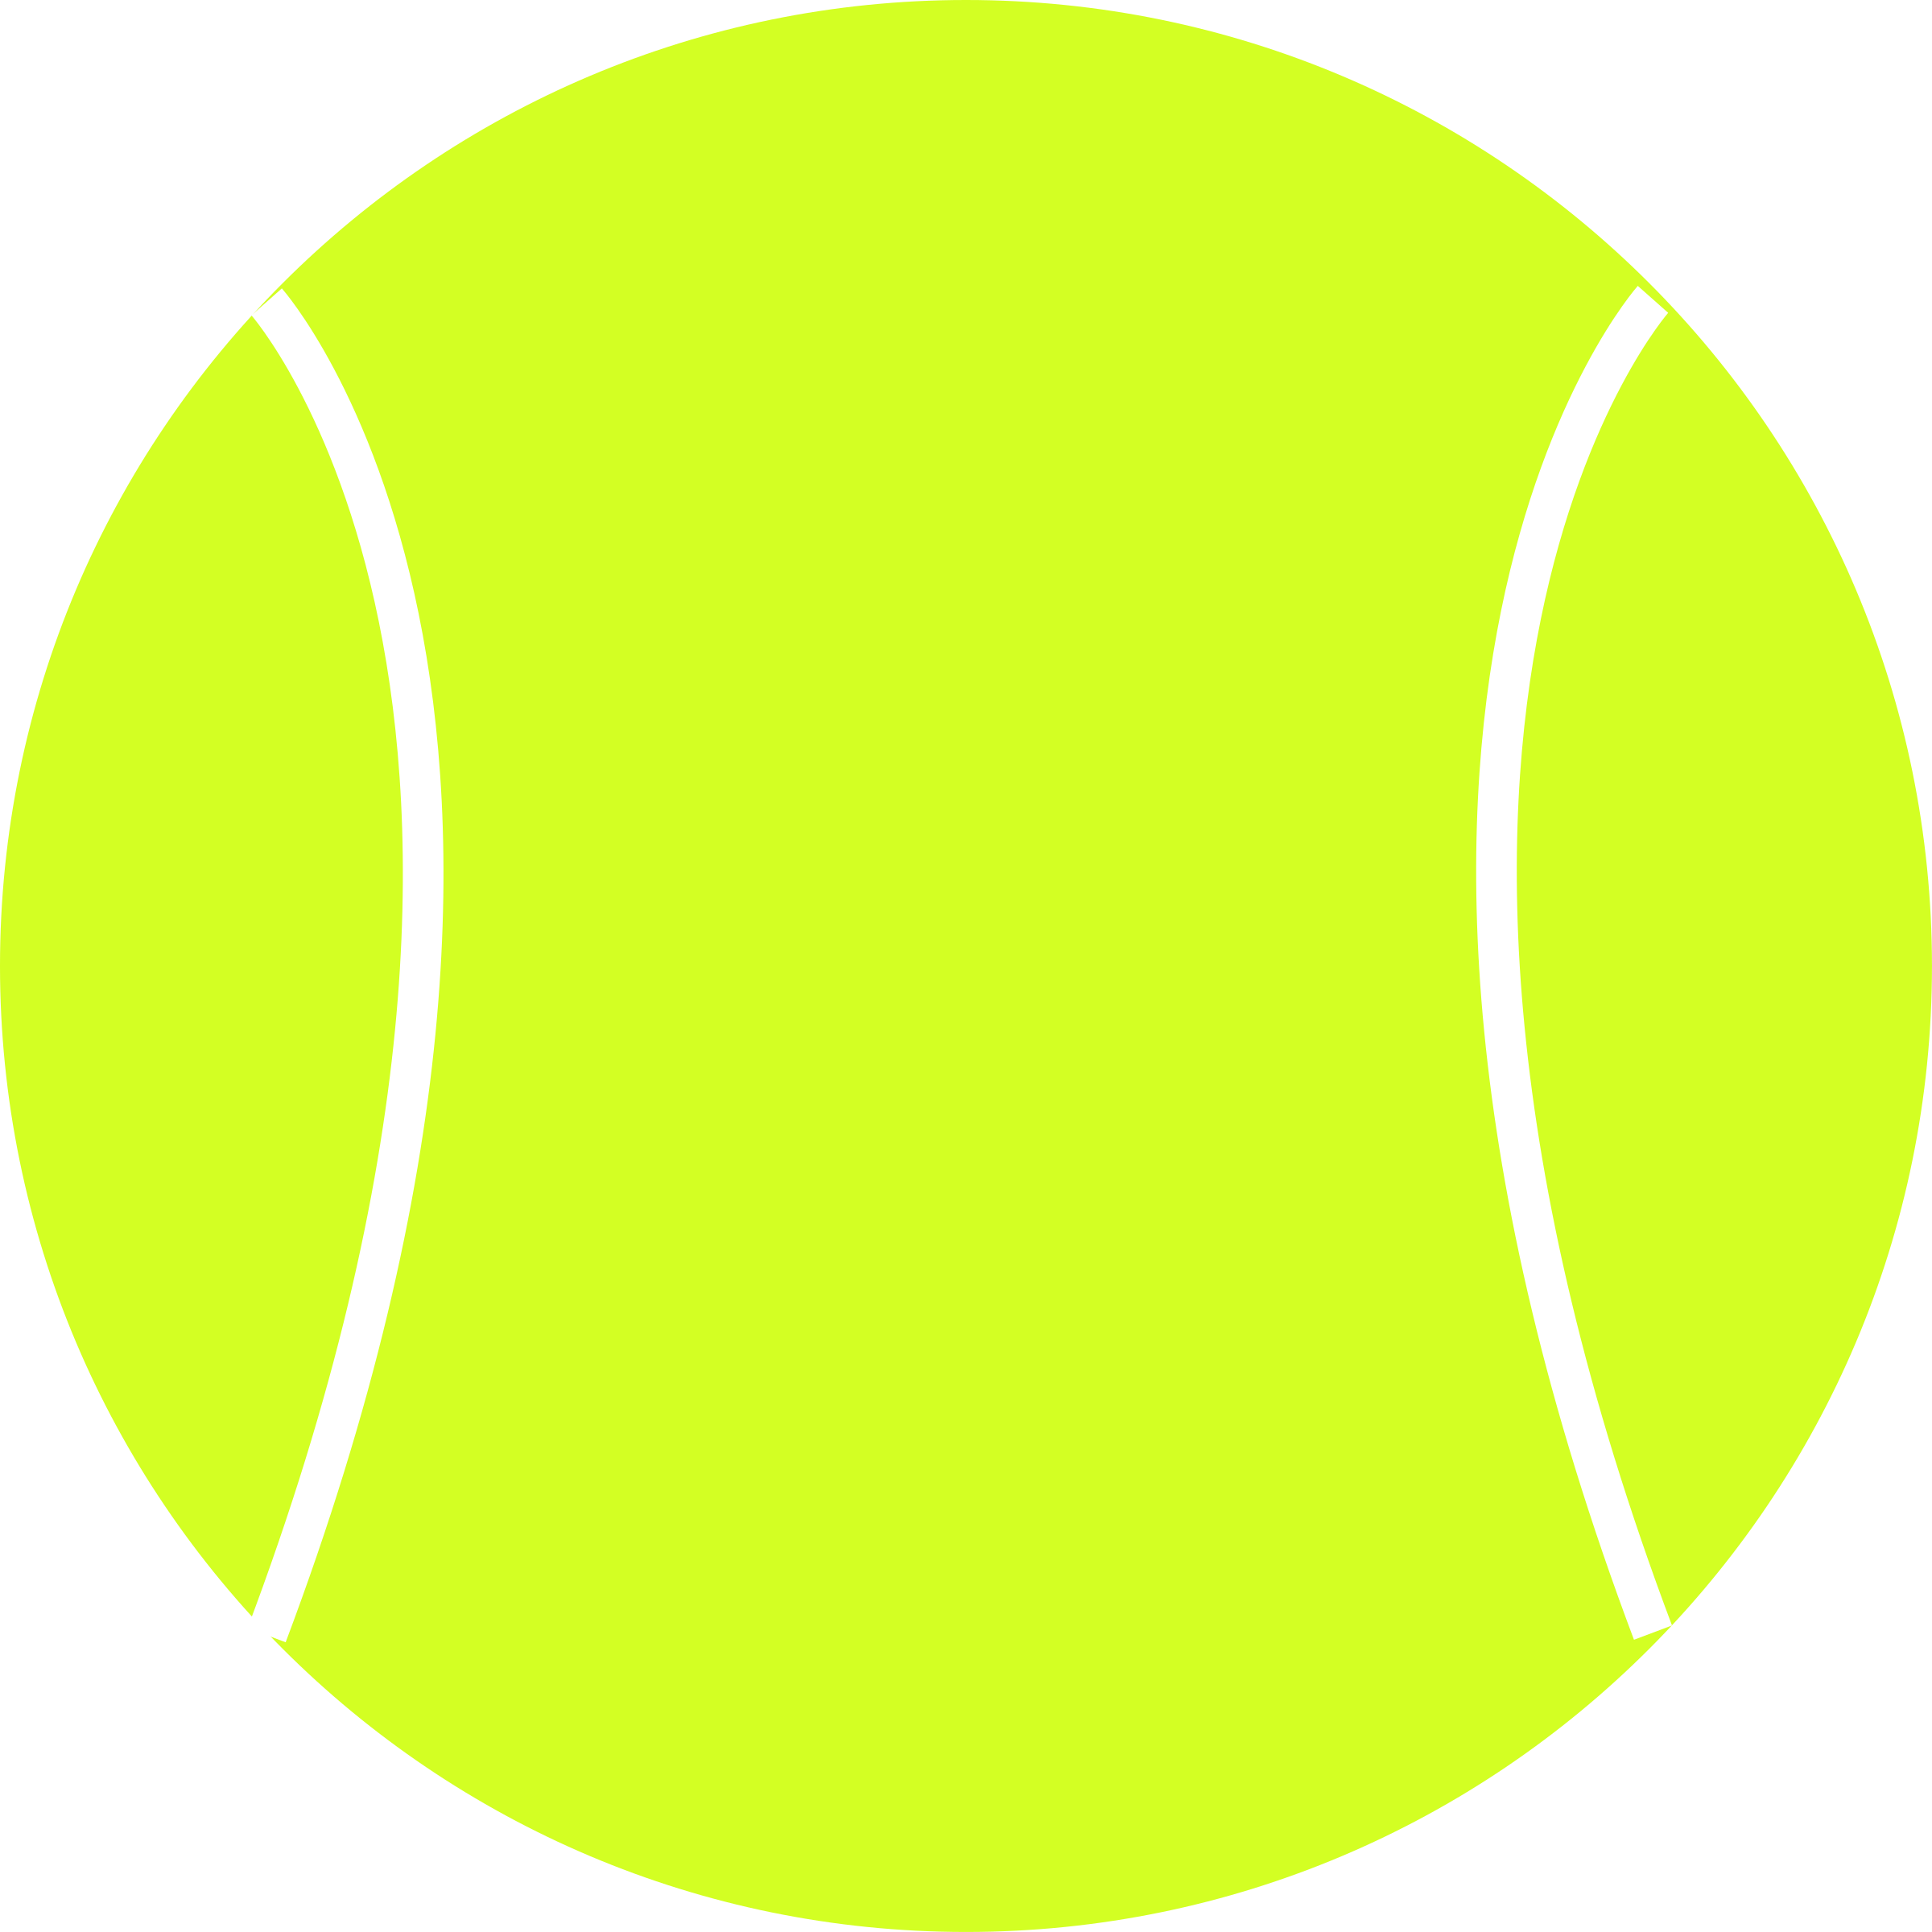 Tennis Ball by schoolfreeware